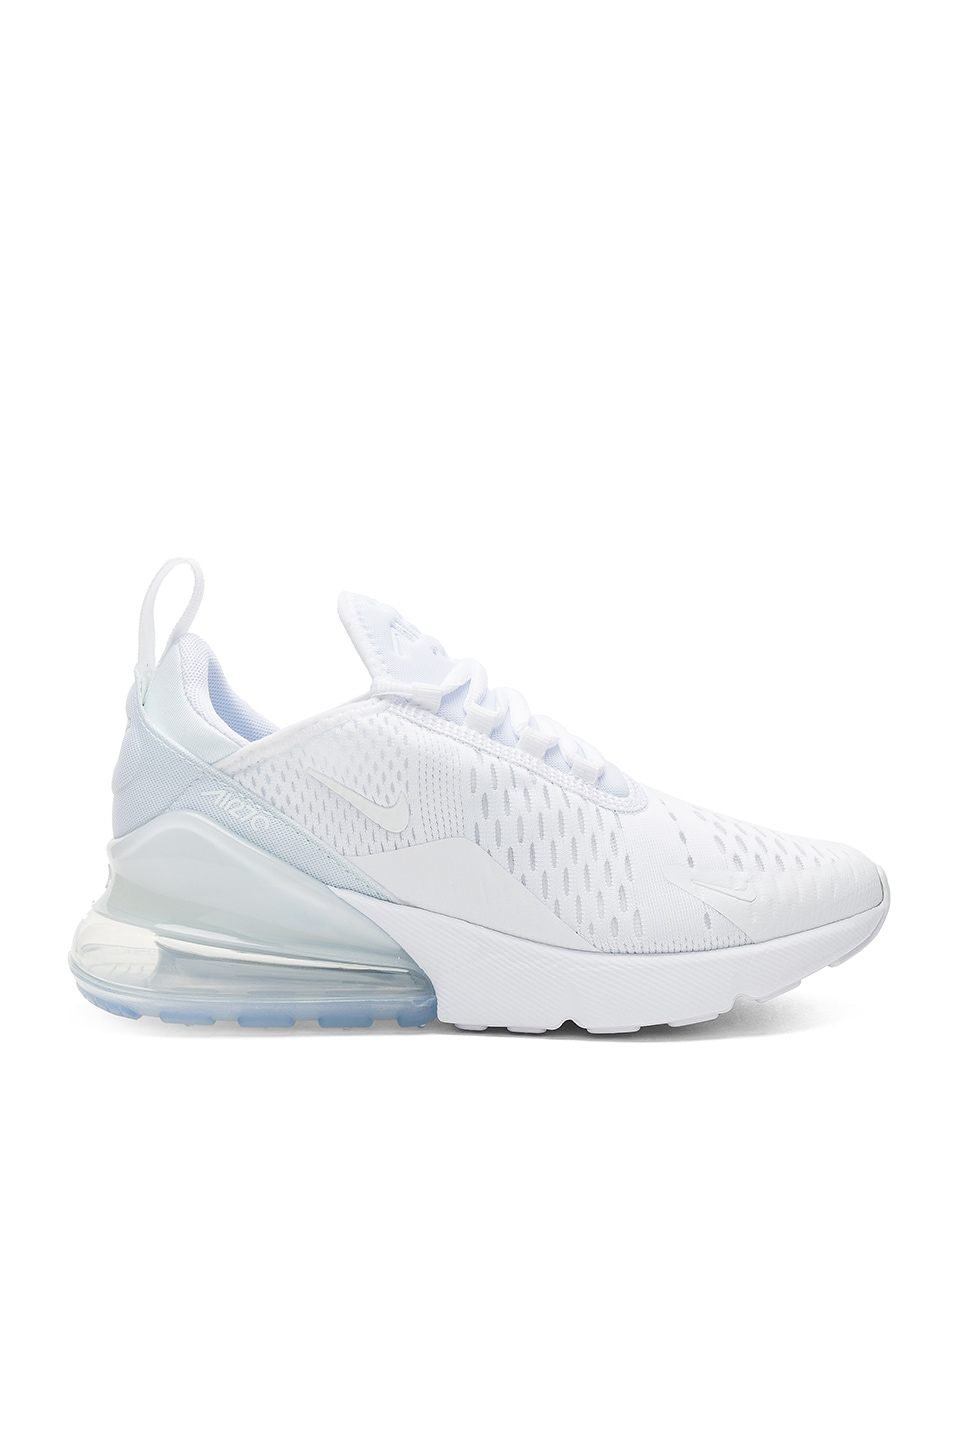 Women'S Air Max 270 Casual Shoes, White, White/ White/ White